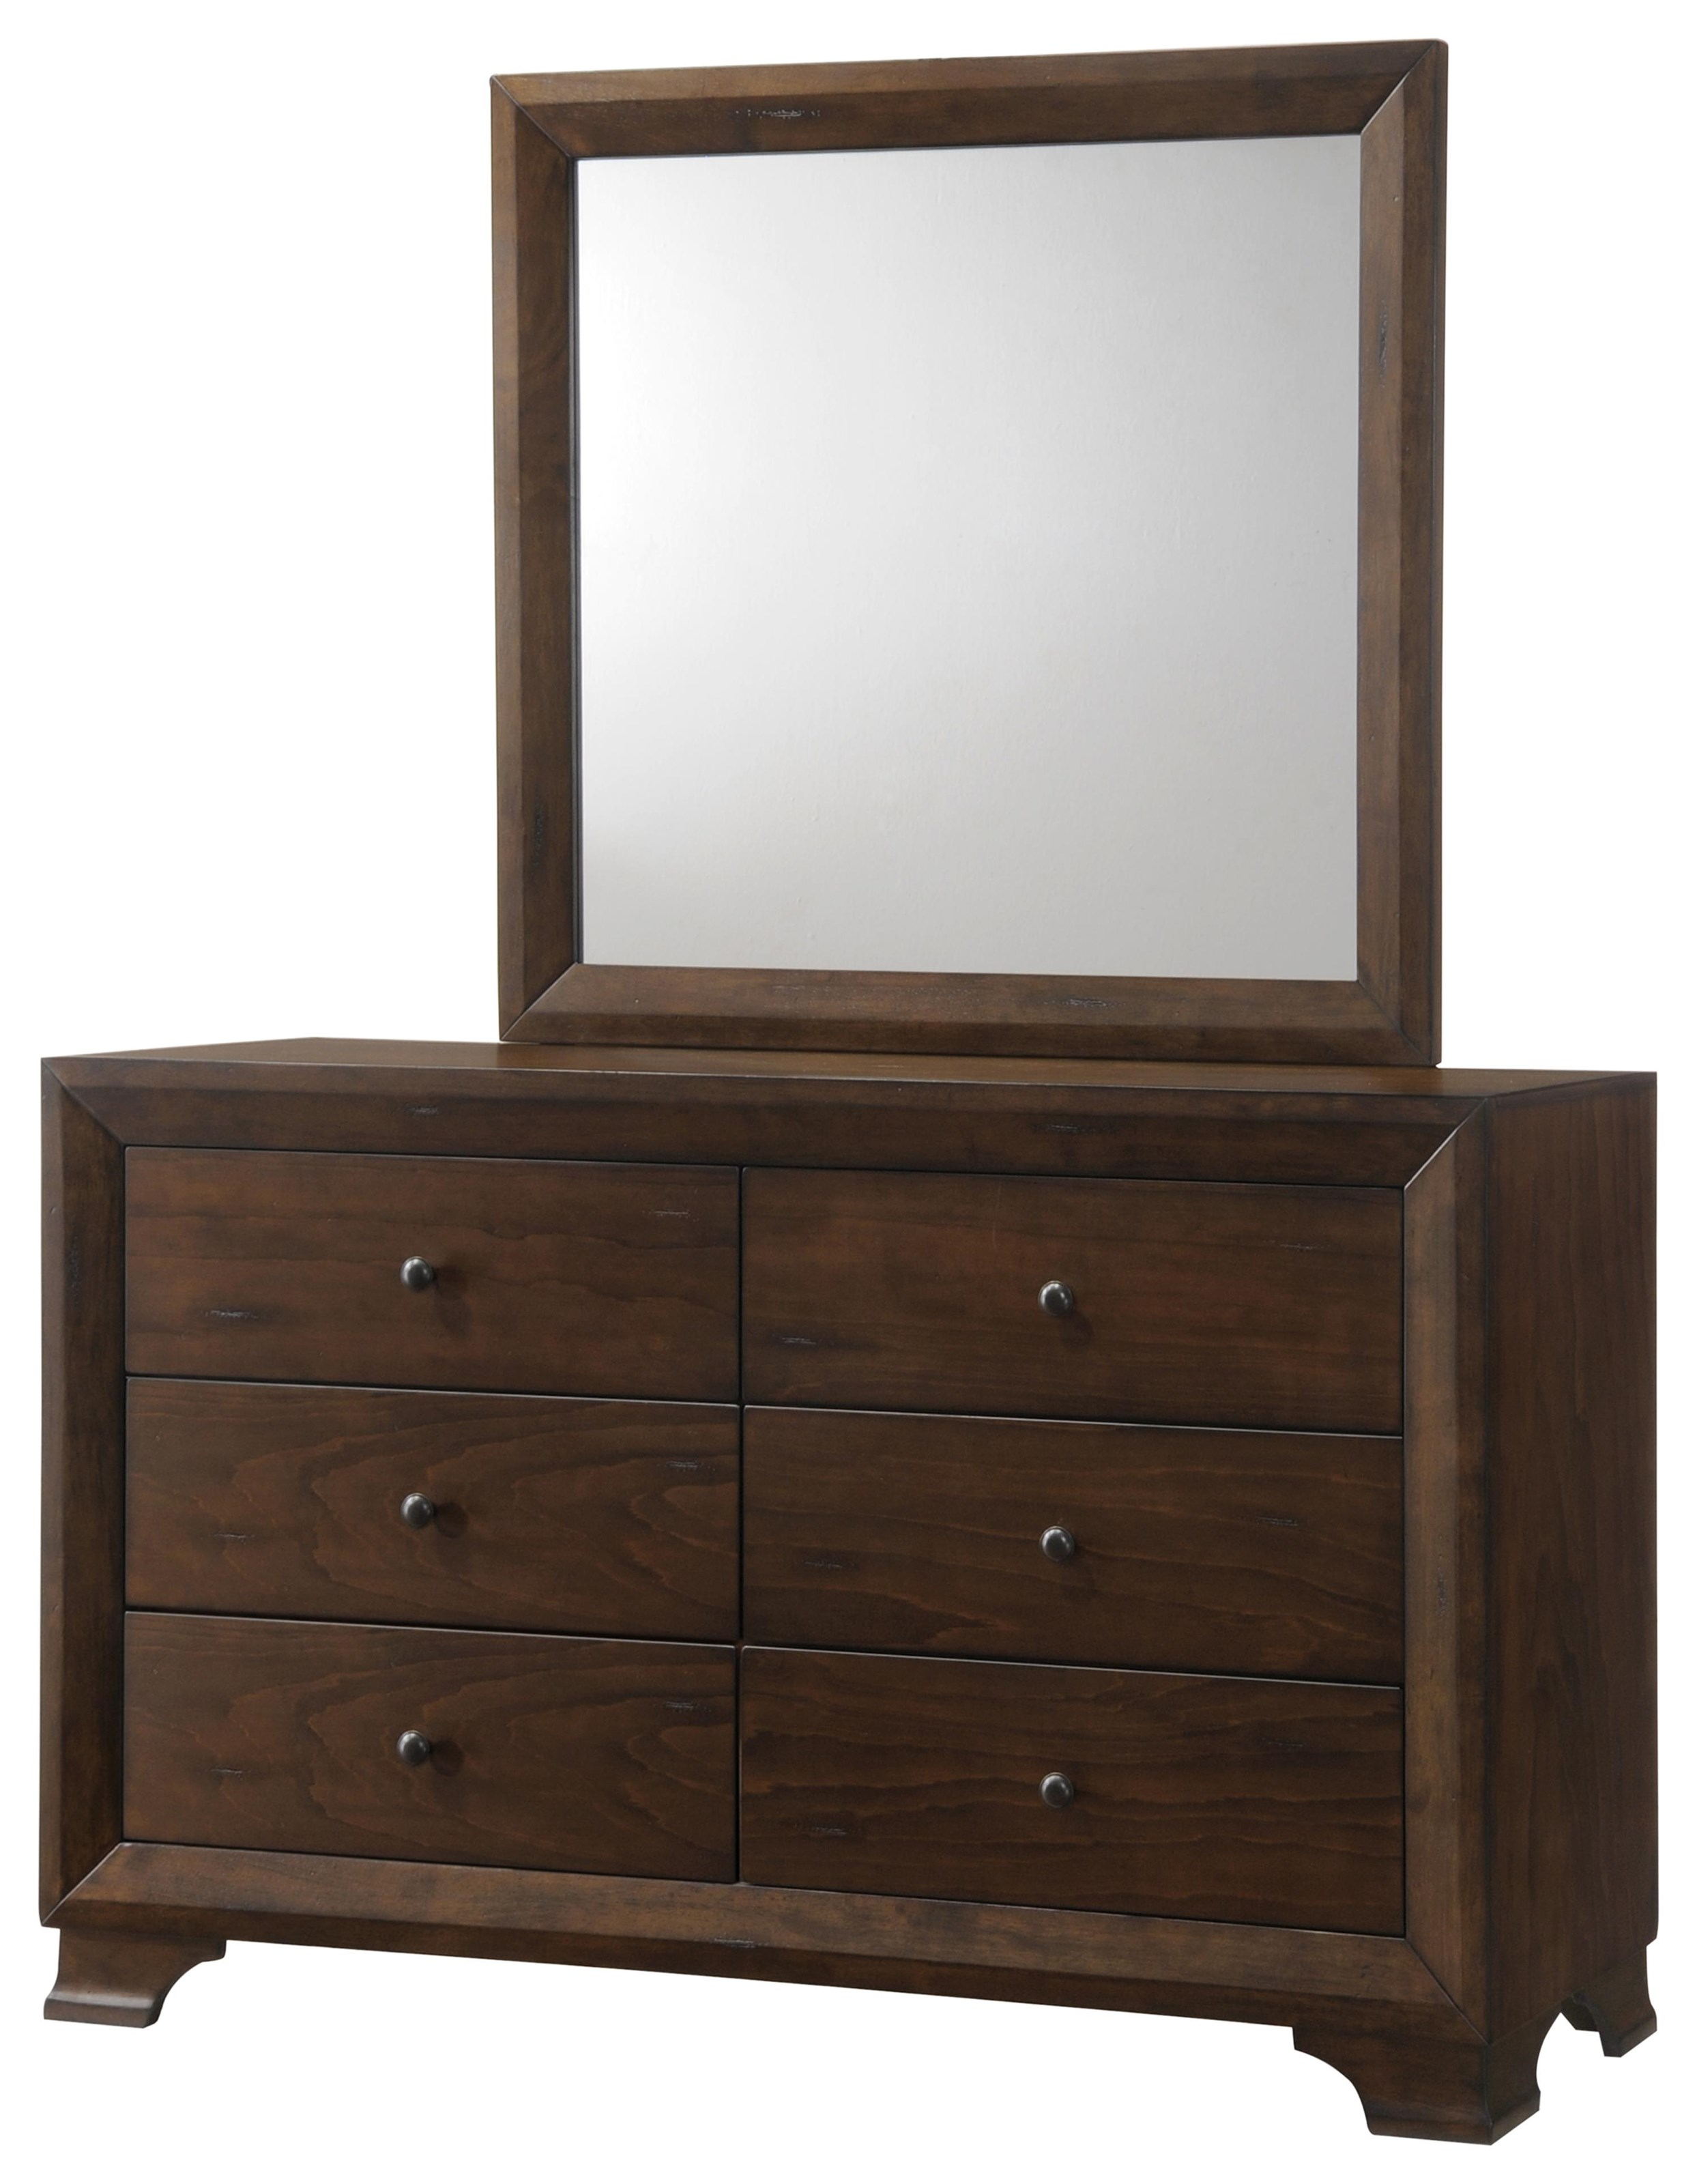 Collins MIRROR by Austin Group at Standard Furniture